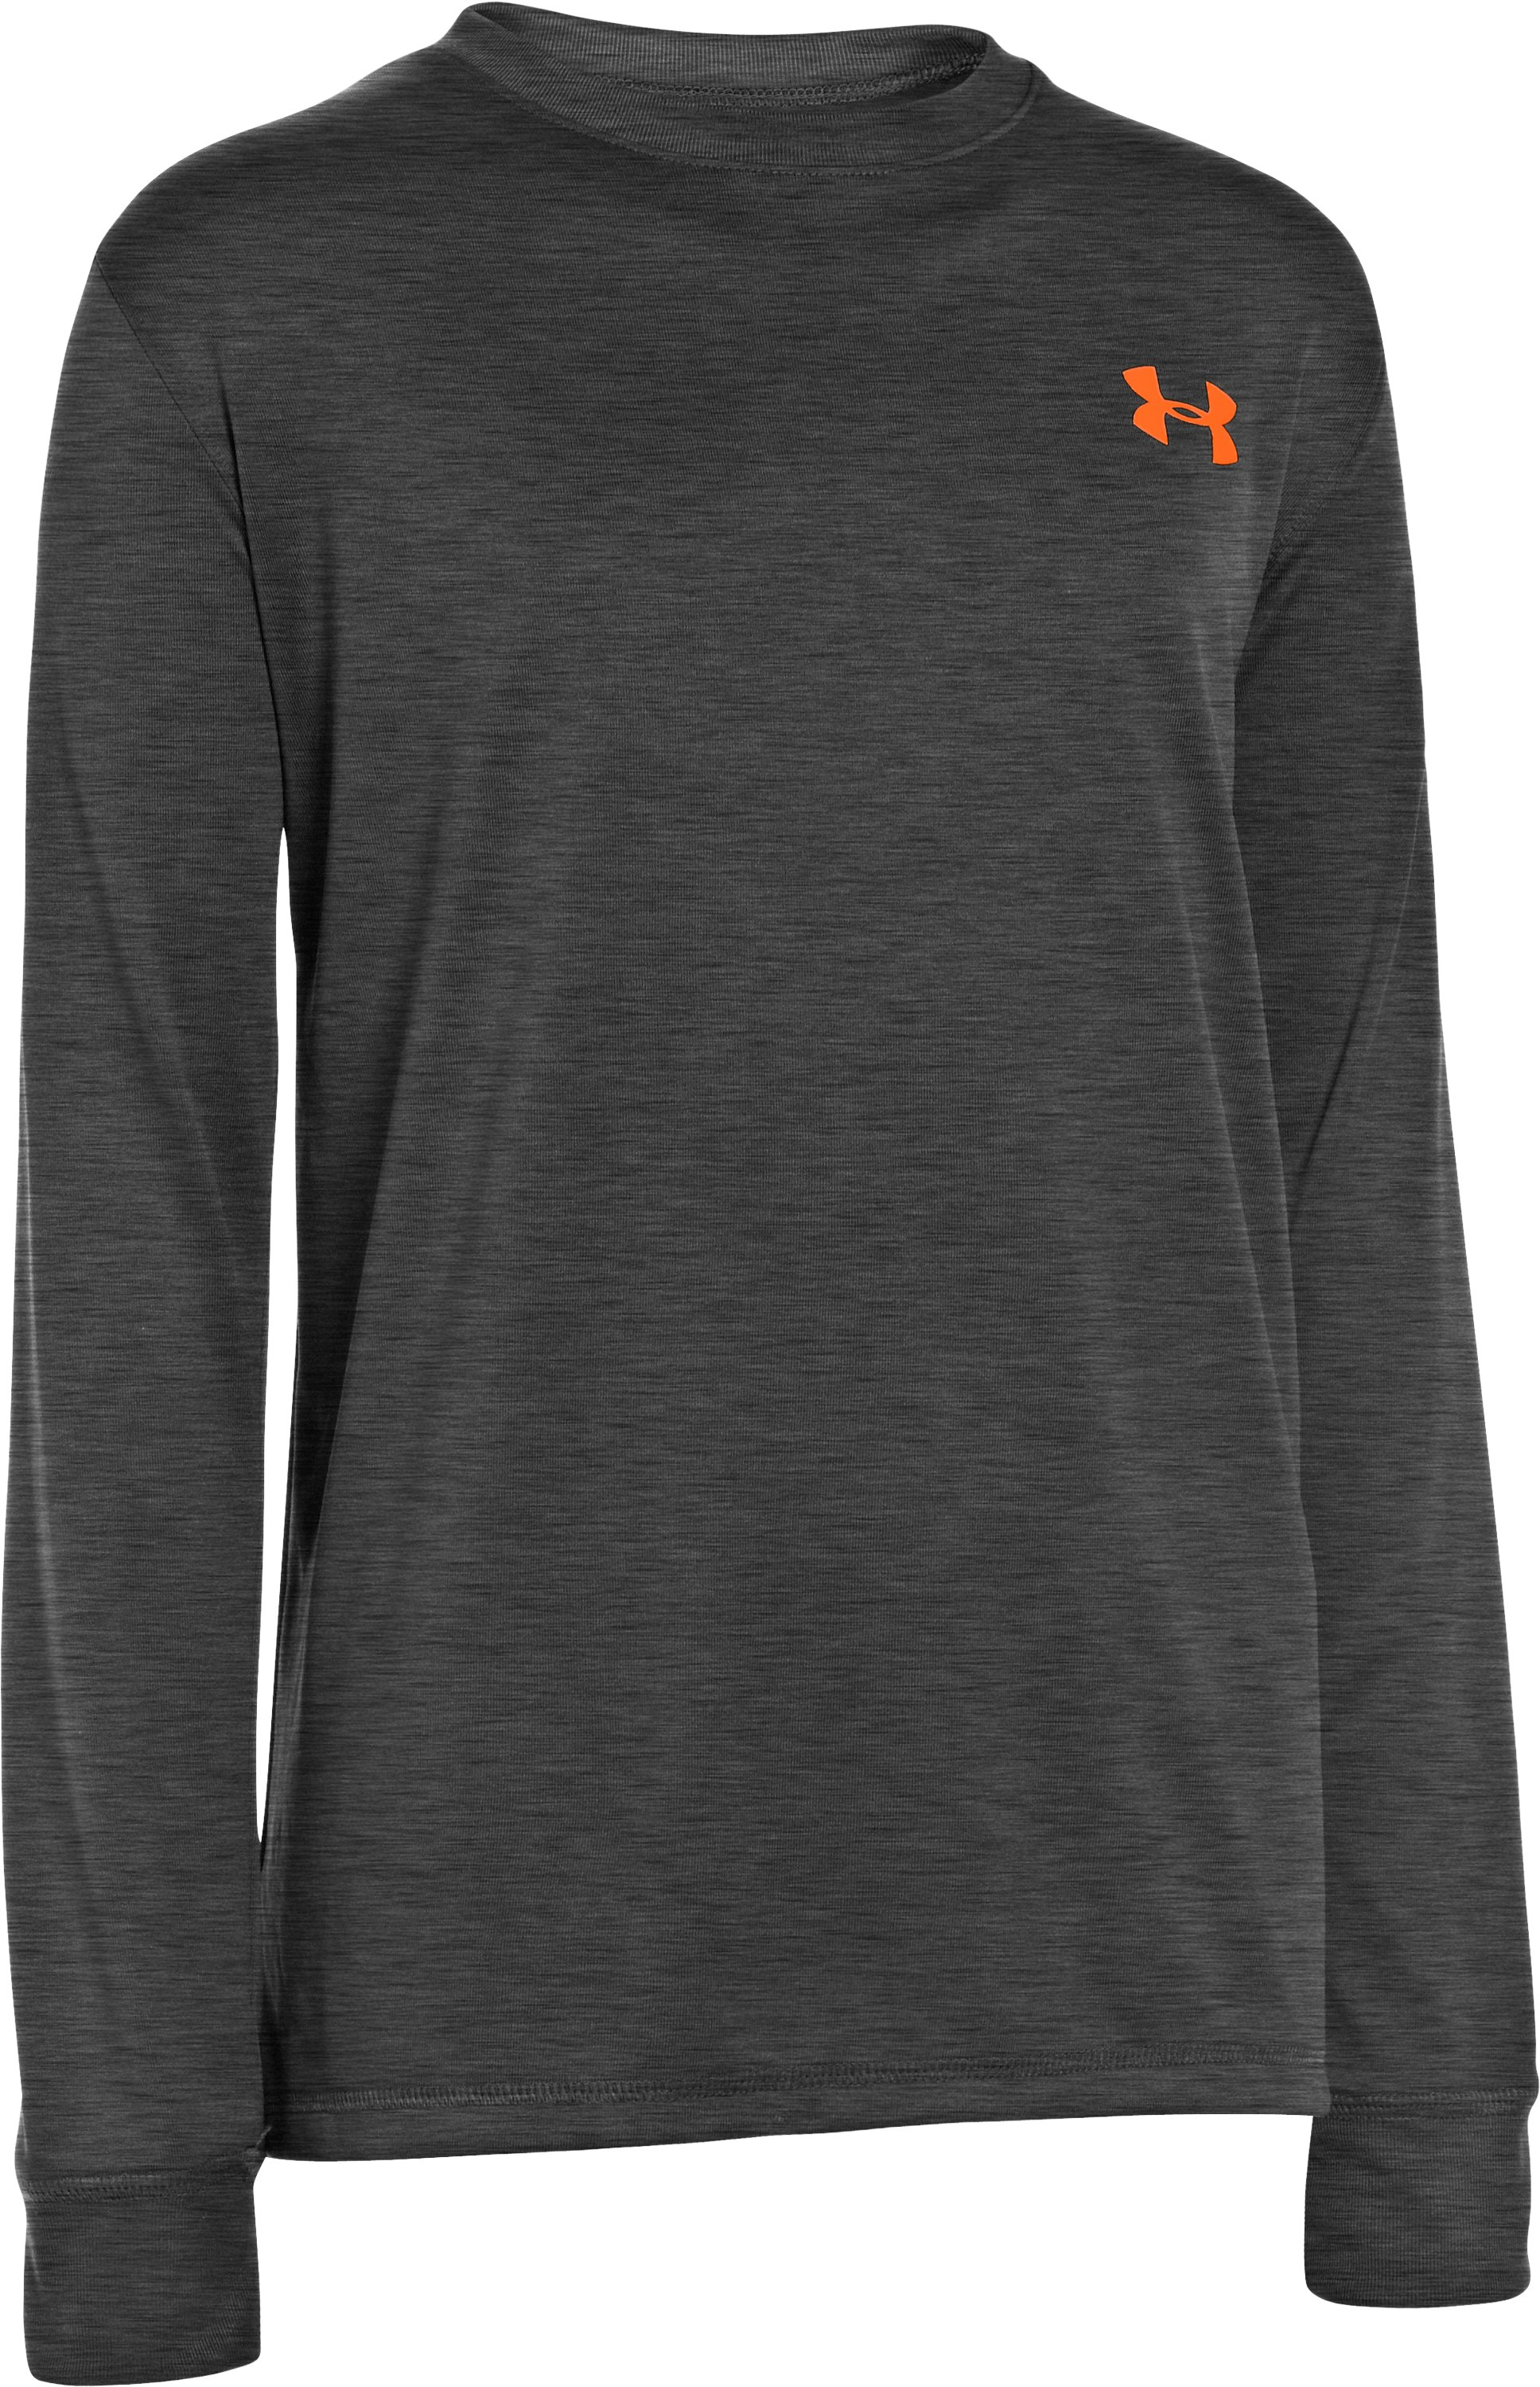 Boys' UA Cray Long Sleeve T-Shirt, Carbon Heather, zoomed image